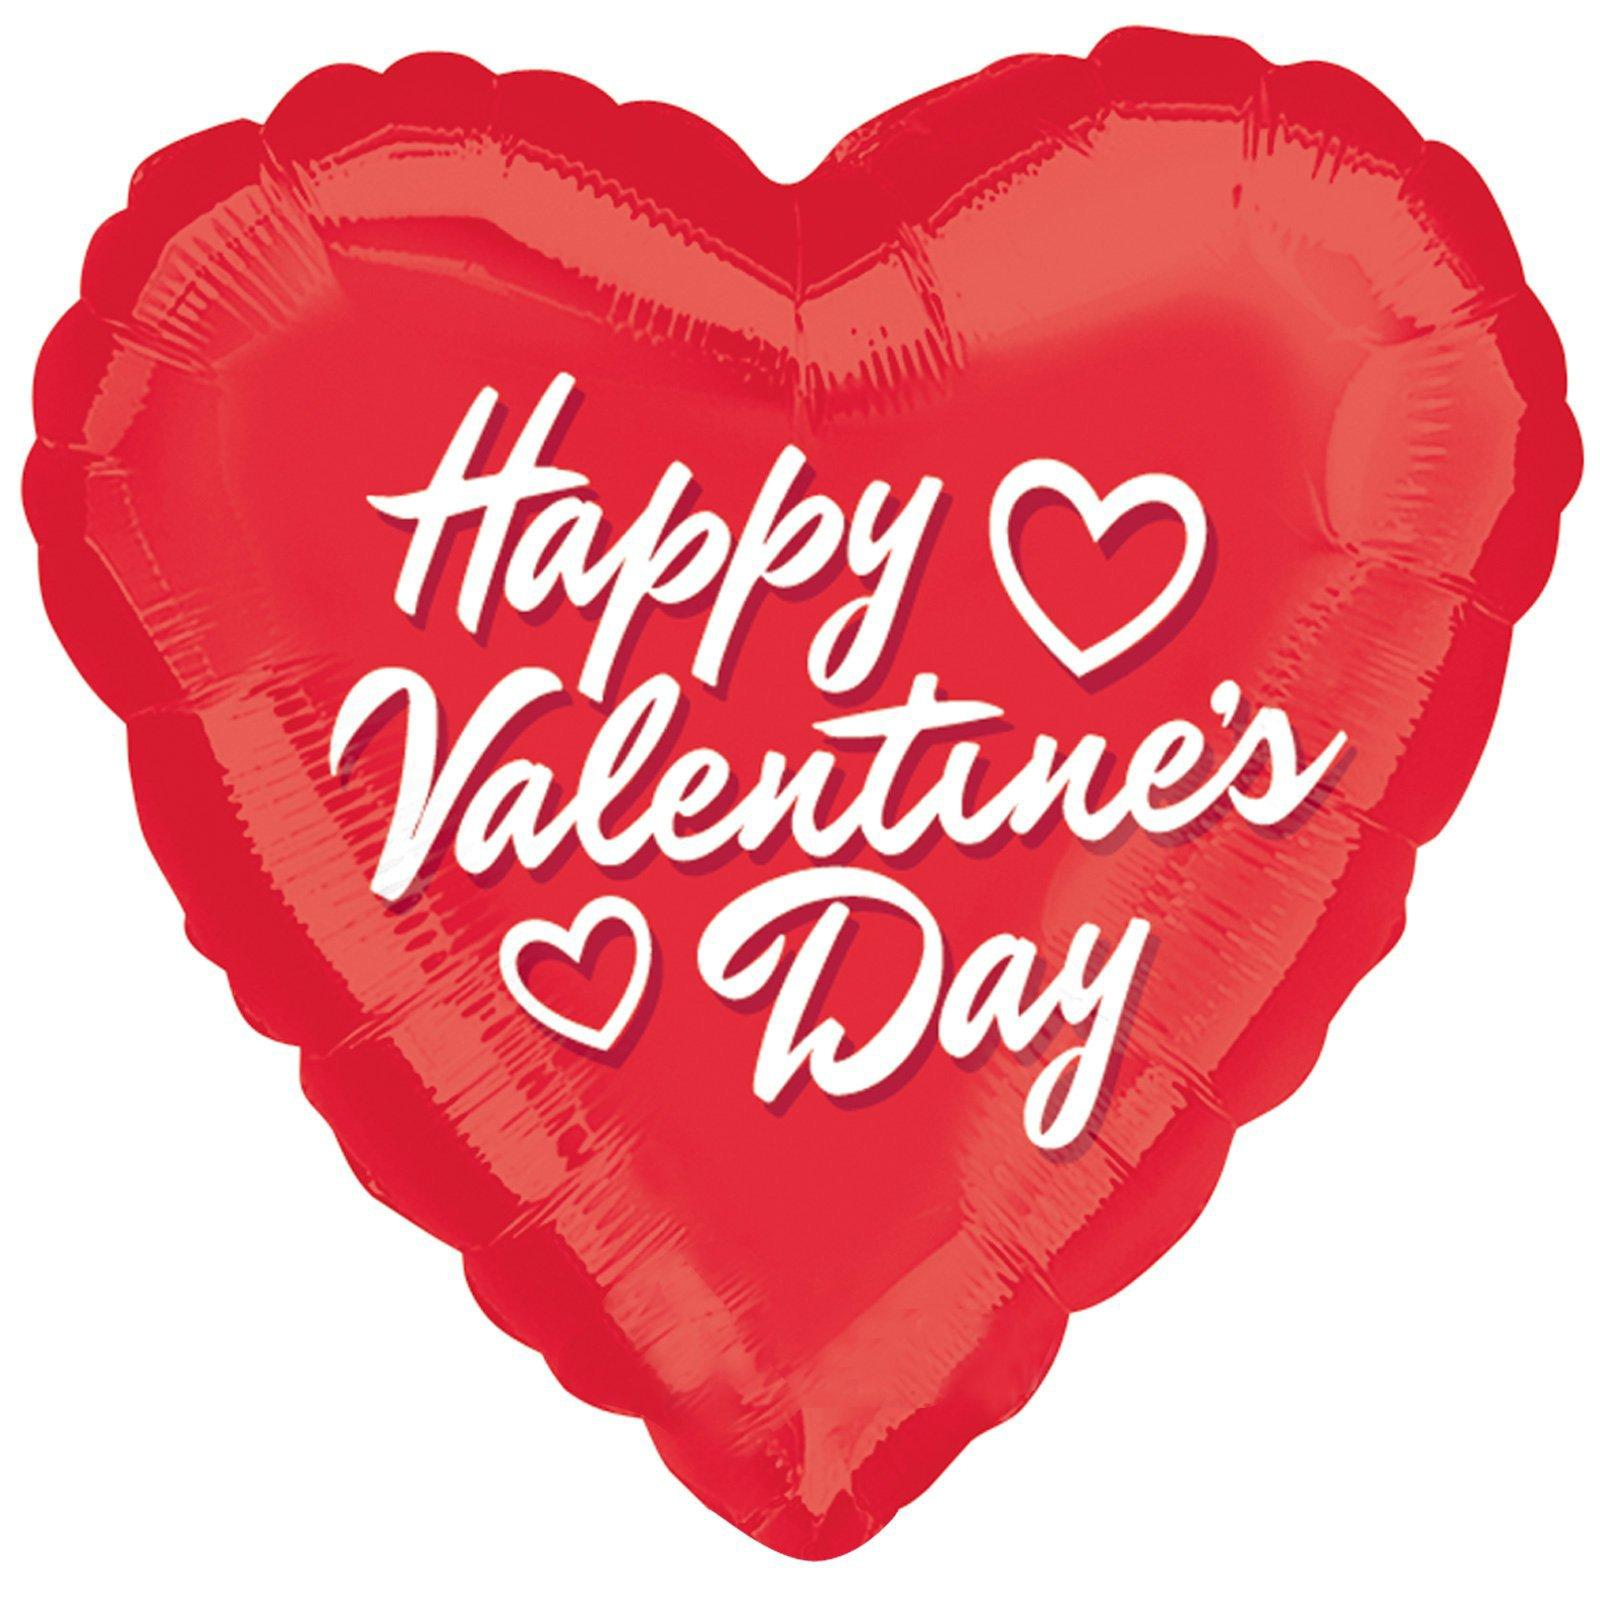 Image of happy valentines day clipart 0 happy valentines day.